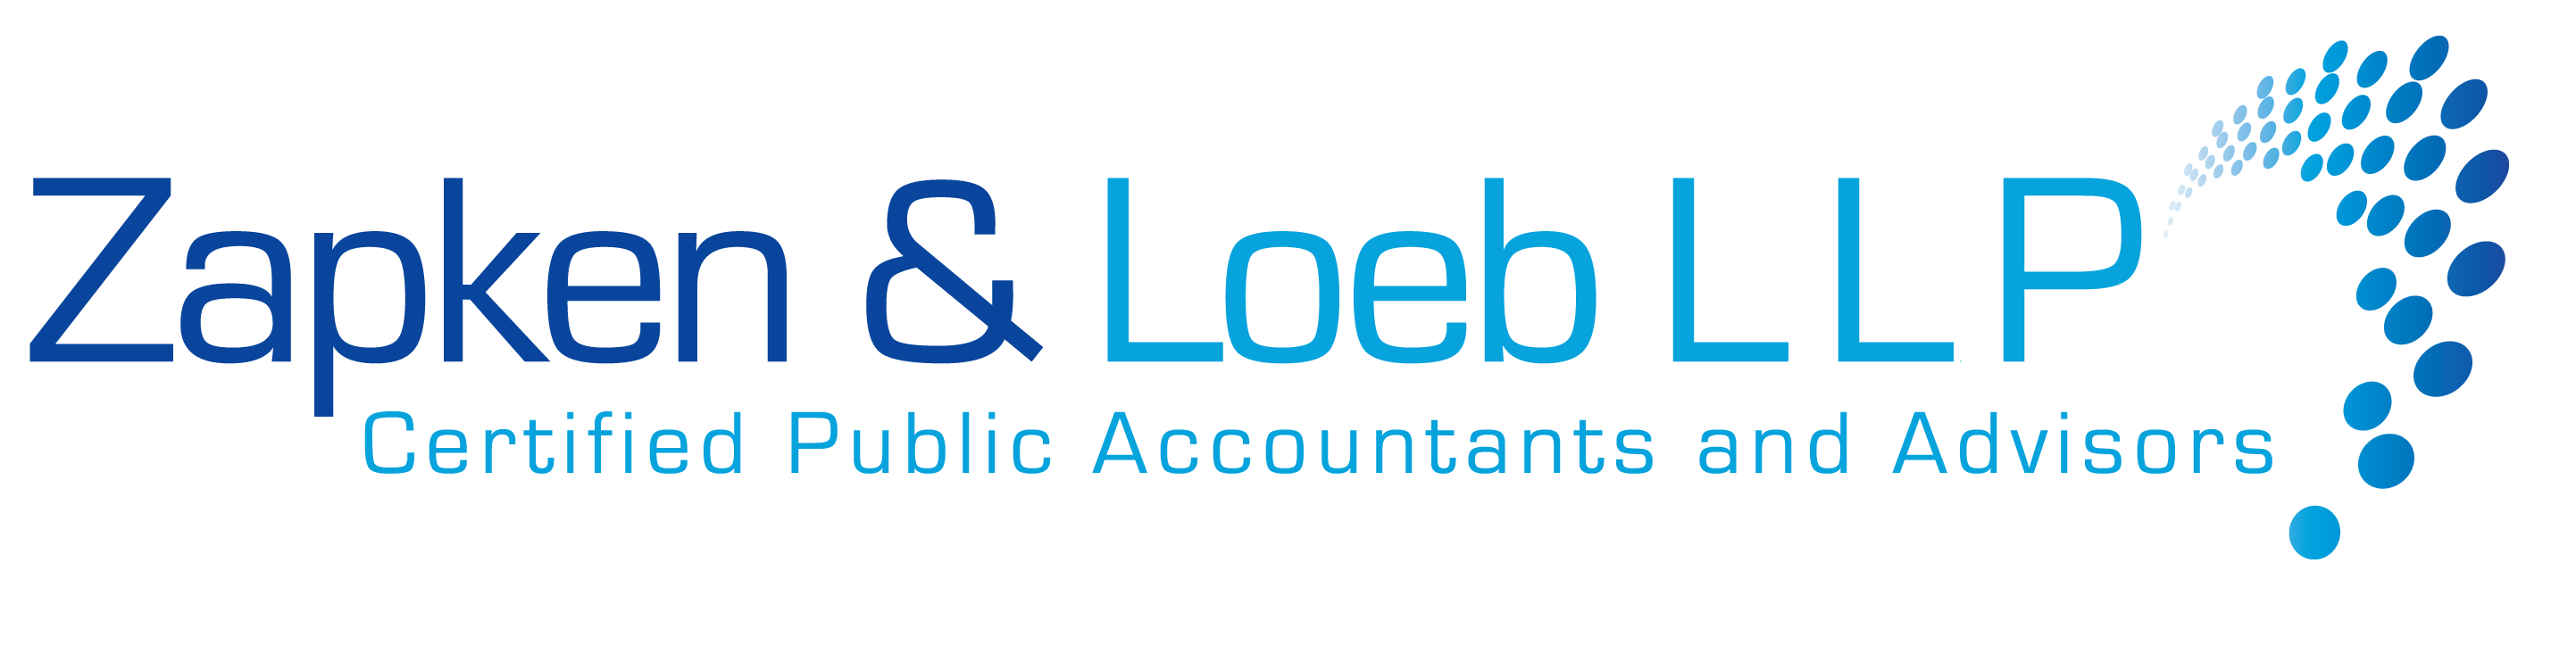 Woodbury, NY Accounting Firm | Our Values Page | Zapken & Loeb L.L.P.